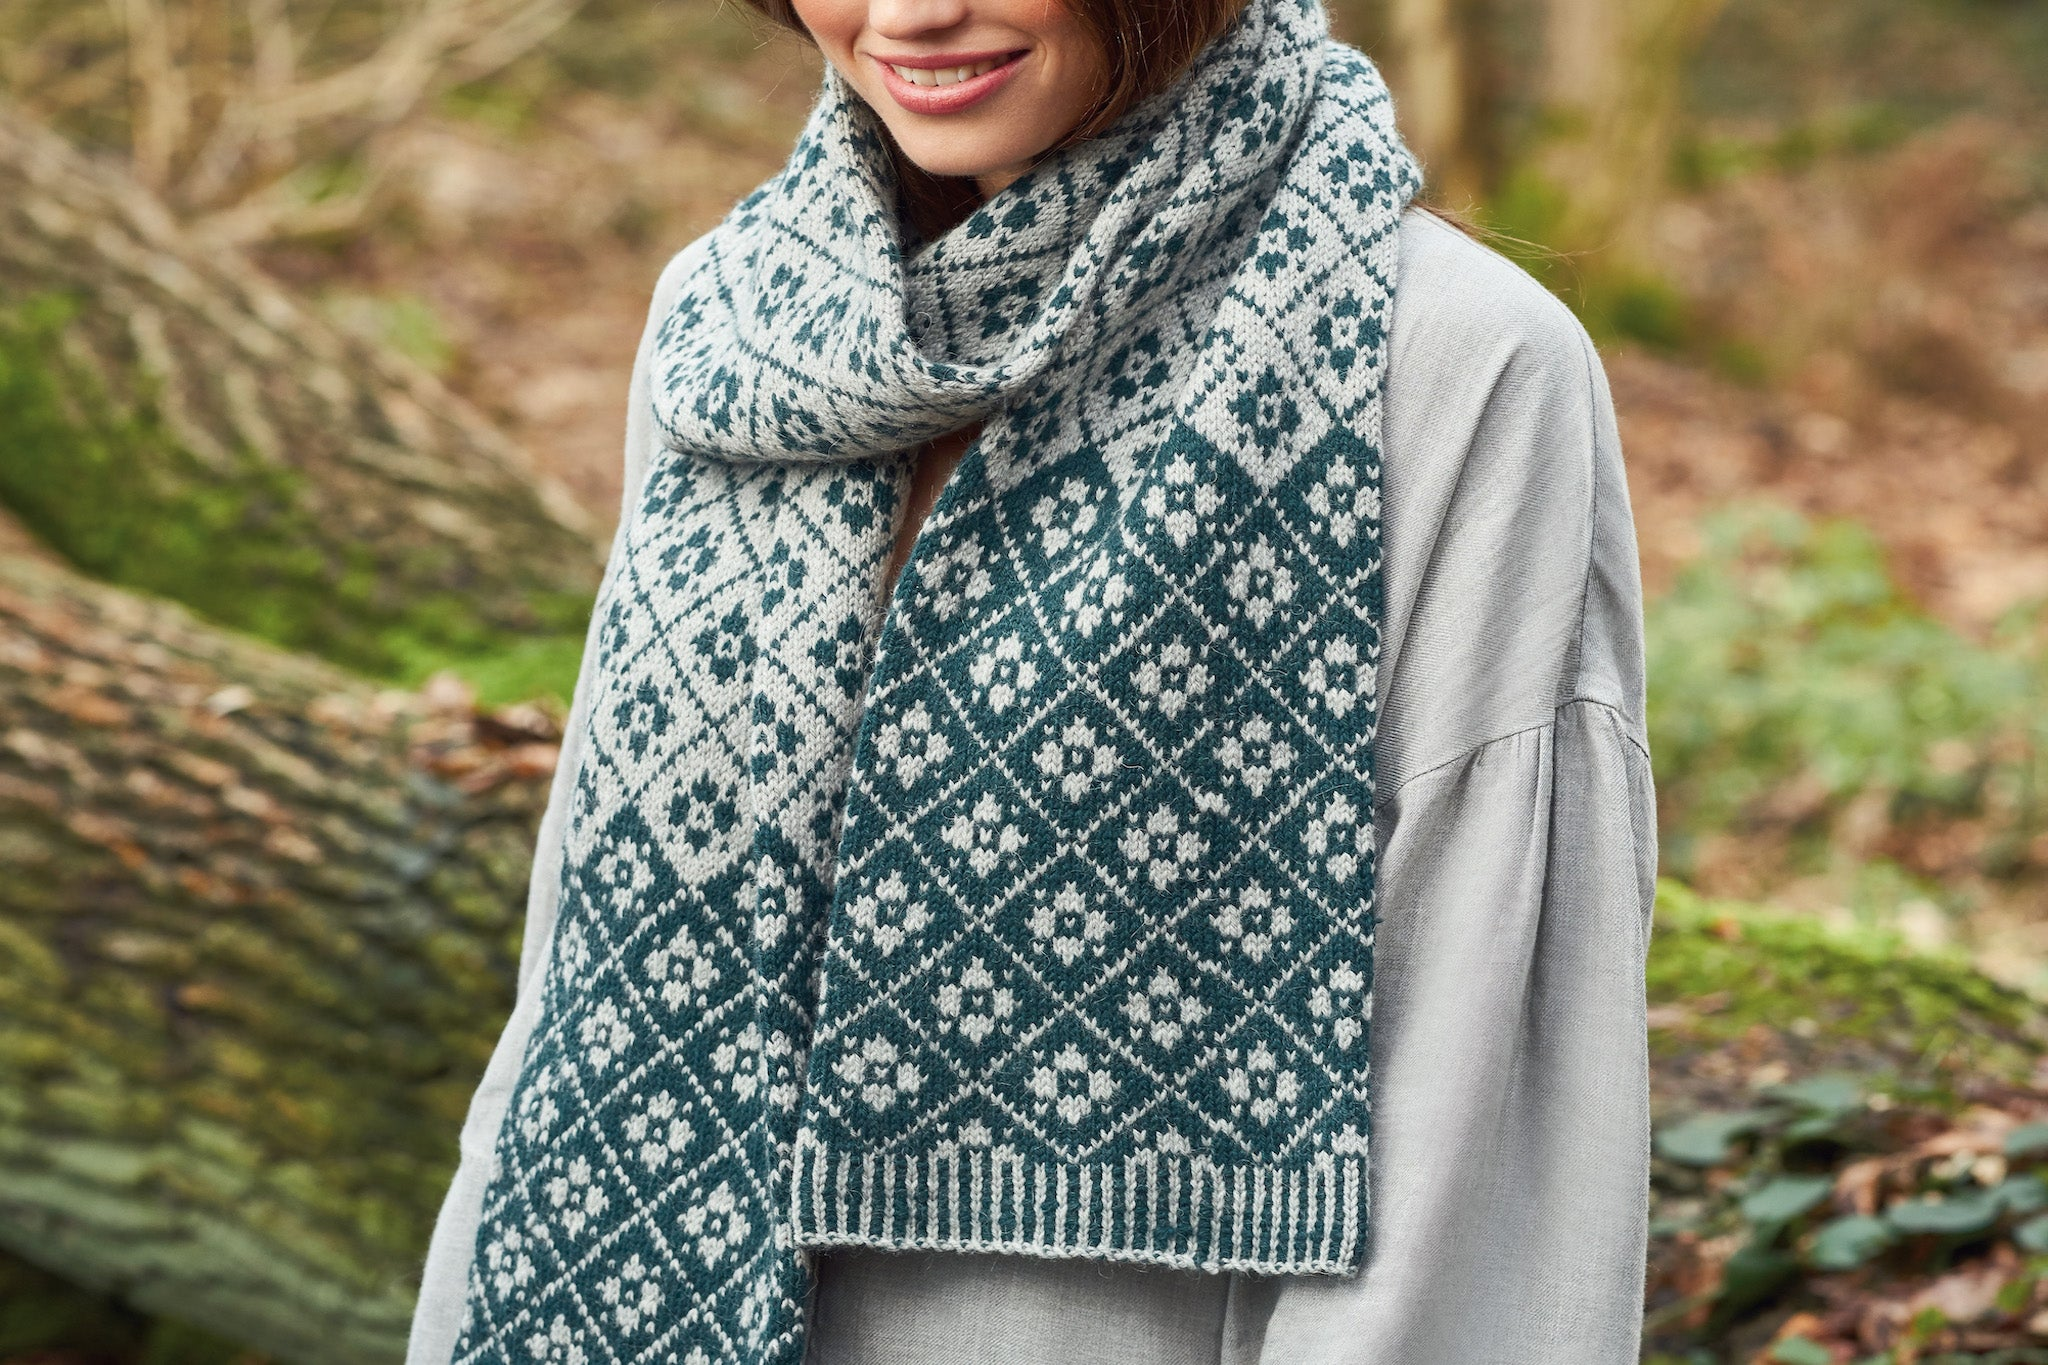 Lattice Scarf Kit